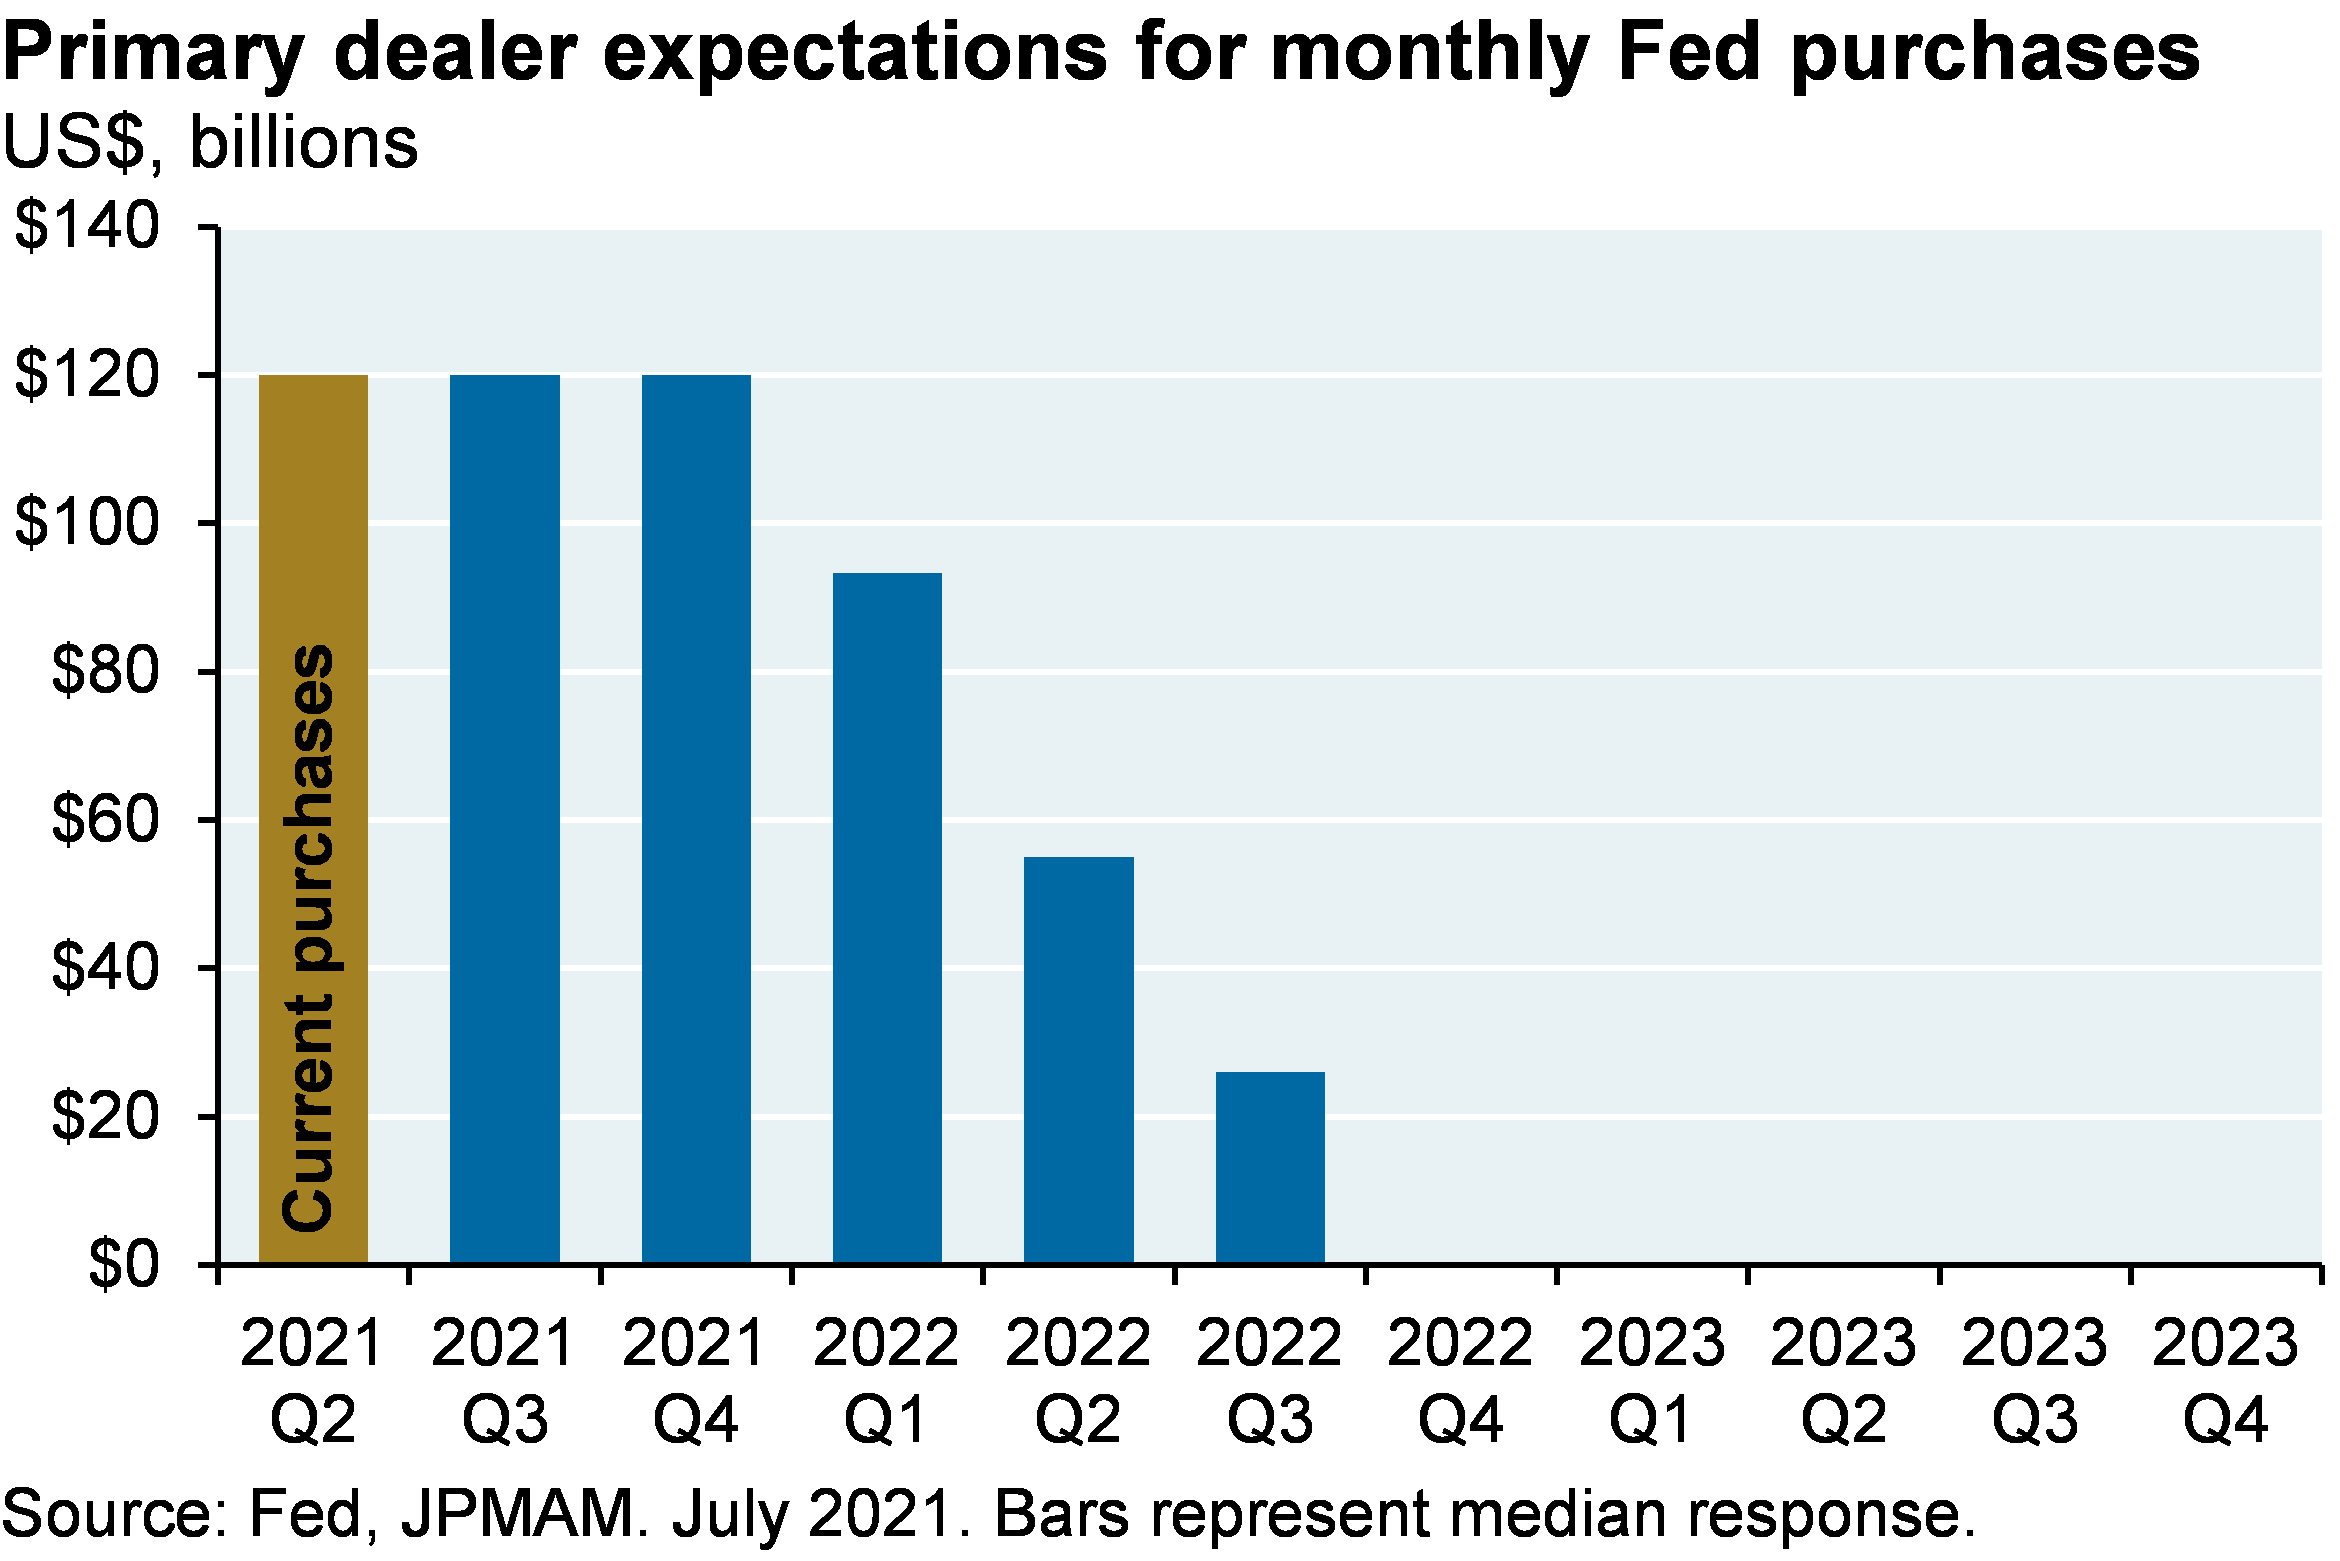 Bar chart shows primary dealer expectations for monthly Fed purchases, shown in billions of dollars. Bars represent the median primary dealer response. Fed purchases were $120 billion in Q2 2021, and are expected to be $120 billion in Q3 and Q4 2021. Purchases are expected to decline to ~$95 billion in Q1 2022, ~$55 billion in Q2 2022, and ~$25 billion in Q3 2022. No purchases are expected from Q4 2022 onwards.